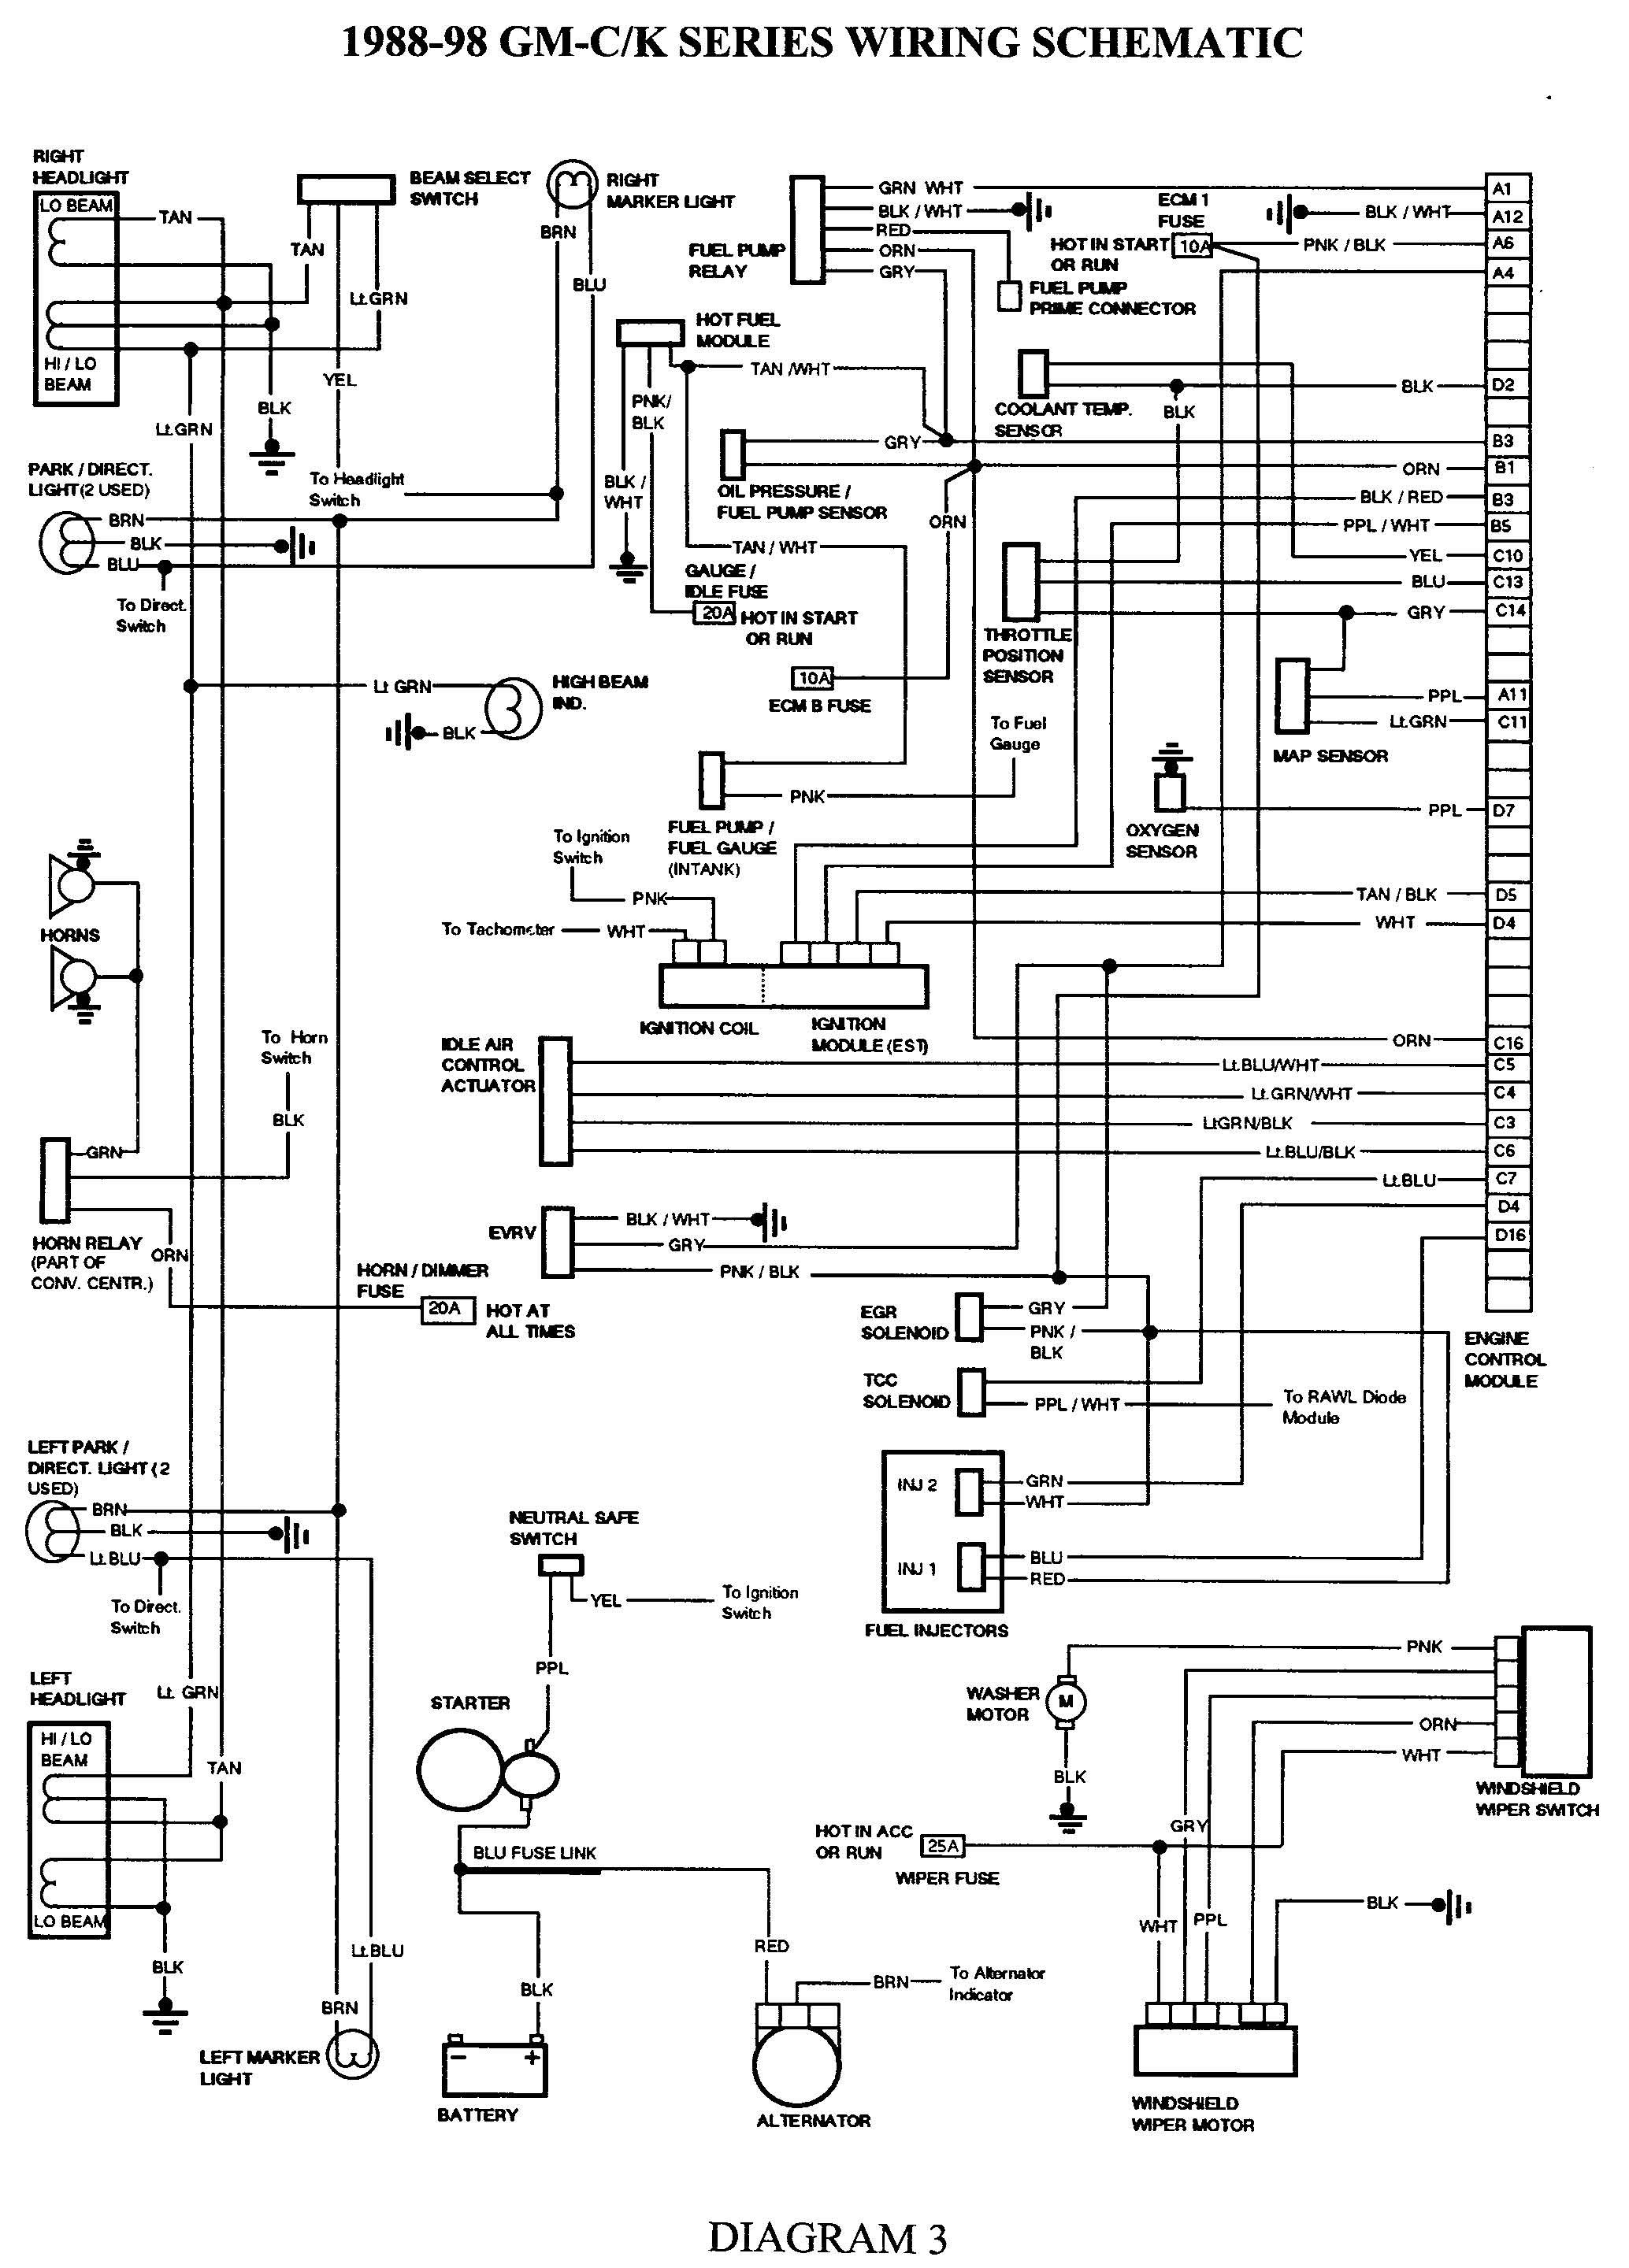 hight resolution of gmc truck wiring diagrams on gm wiring harness diagram 88 98 kc 2003 chevy silverado truck wiring diagram chevy silverado truck wiring diagram